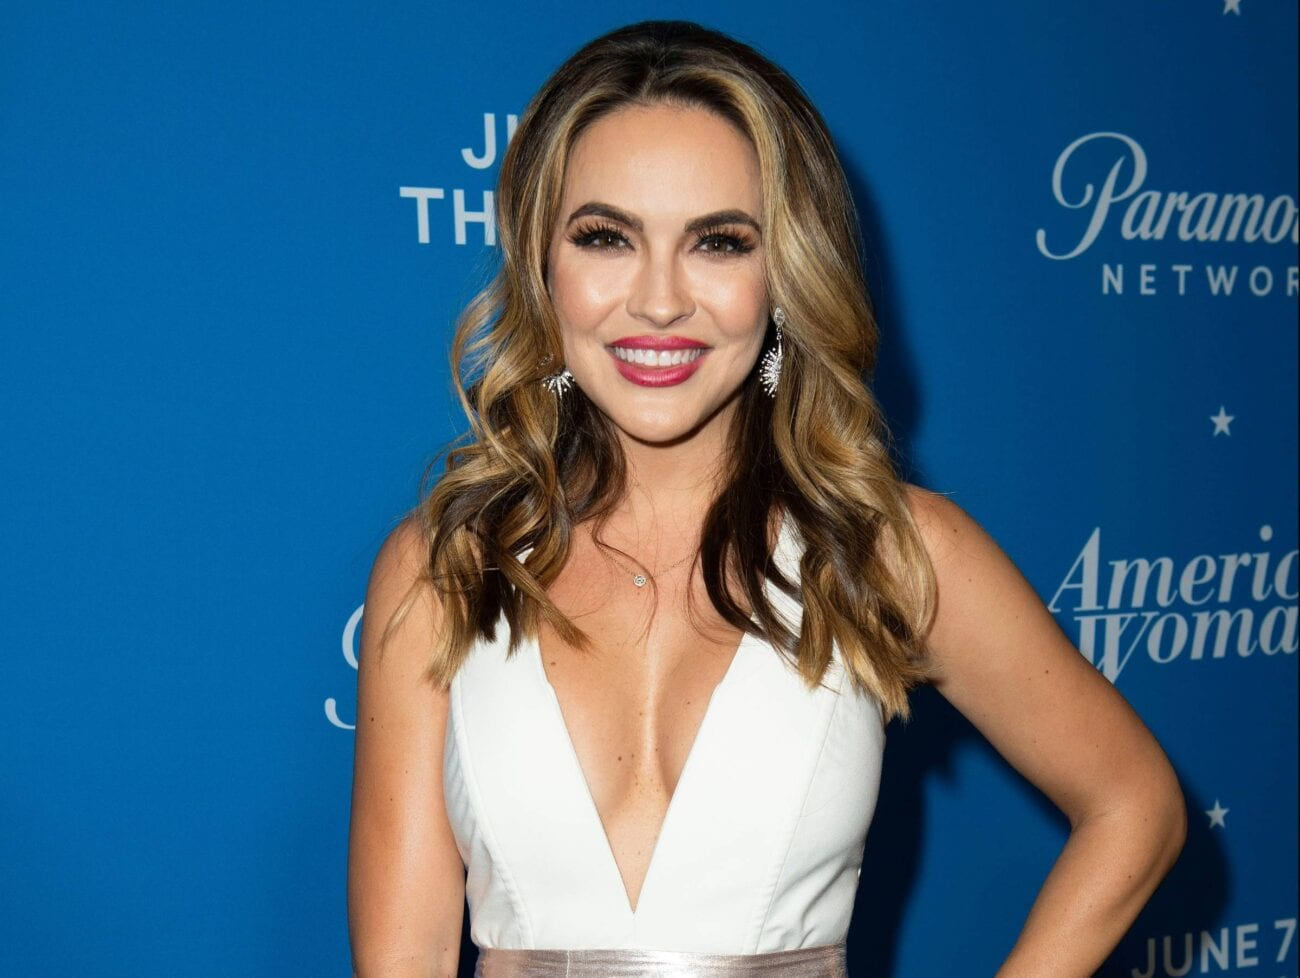 After her split from Justin Hartley, Chrishell Stause is ready to move on. The celebrity is now aspiring to be a mother.